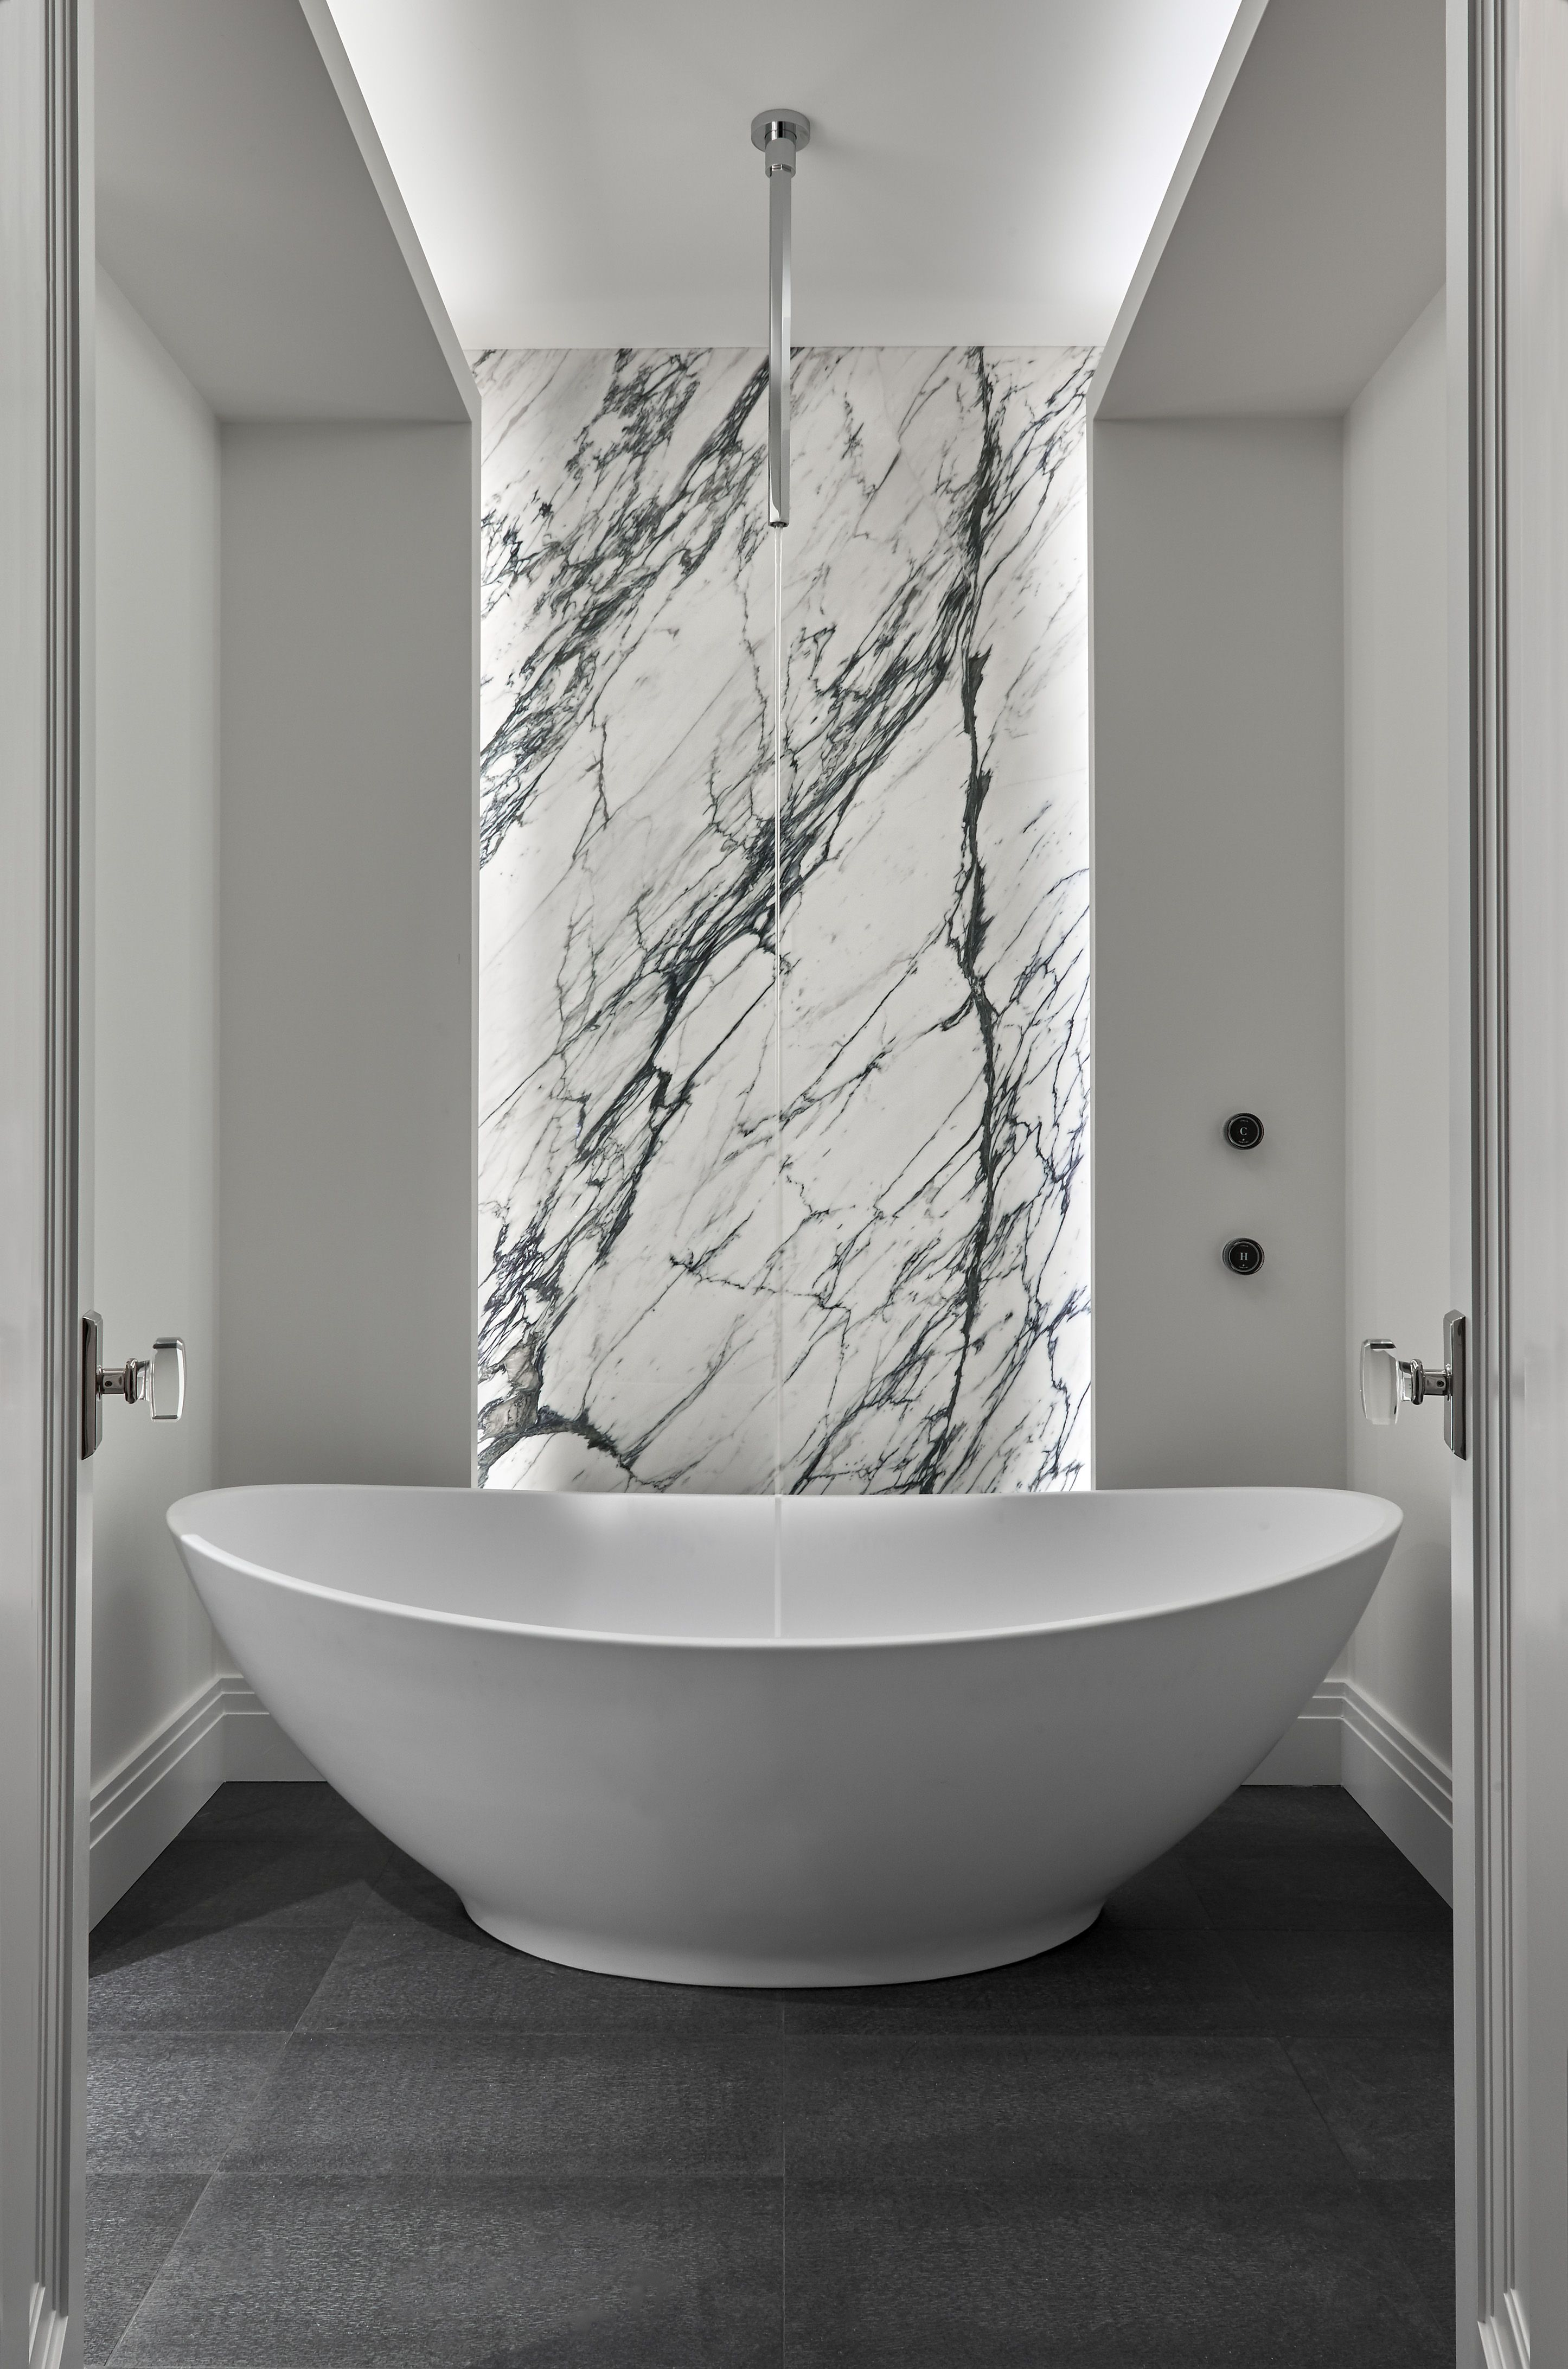 A Dramatic Ceiling Mounted Tub Filler By Fantini In A Private Gold